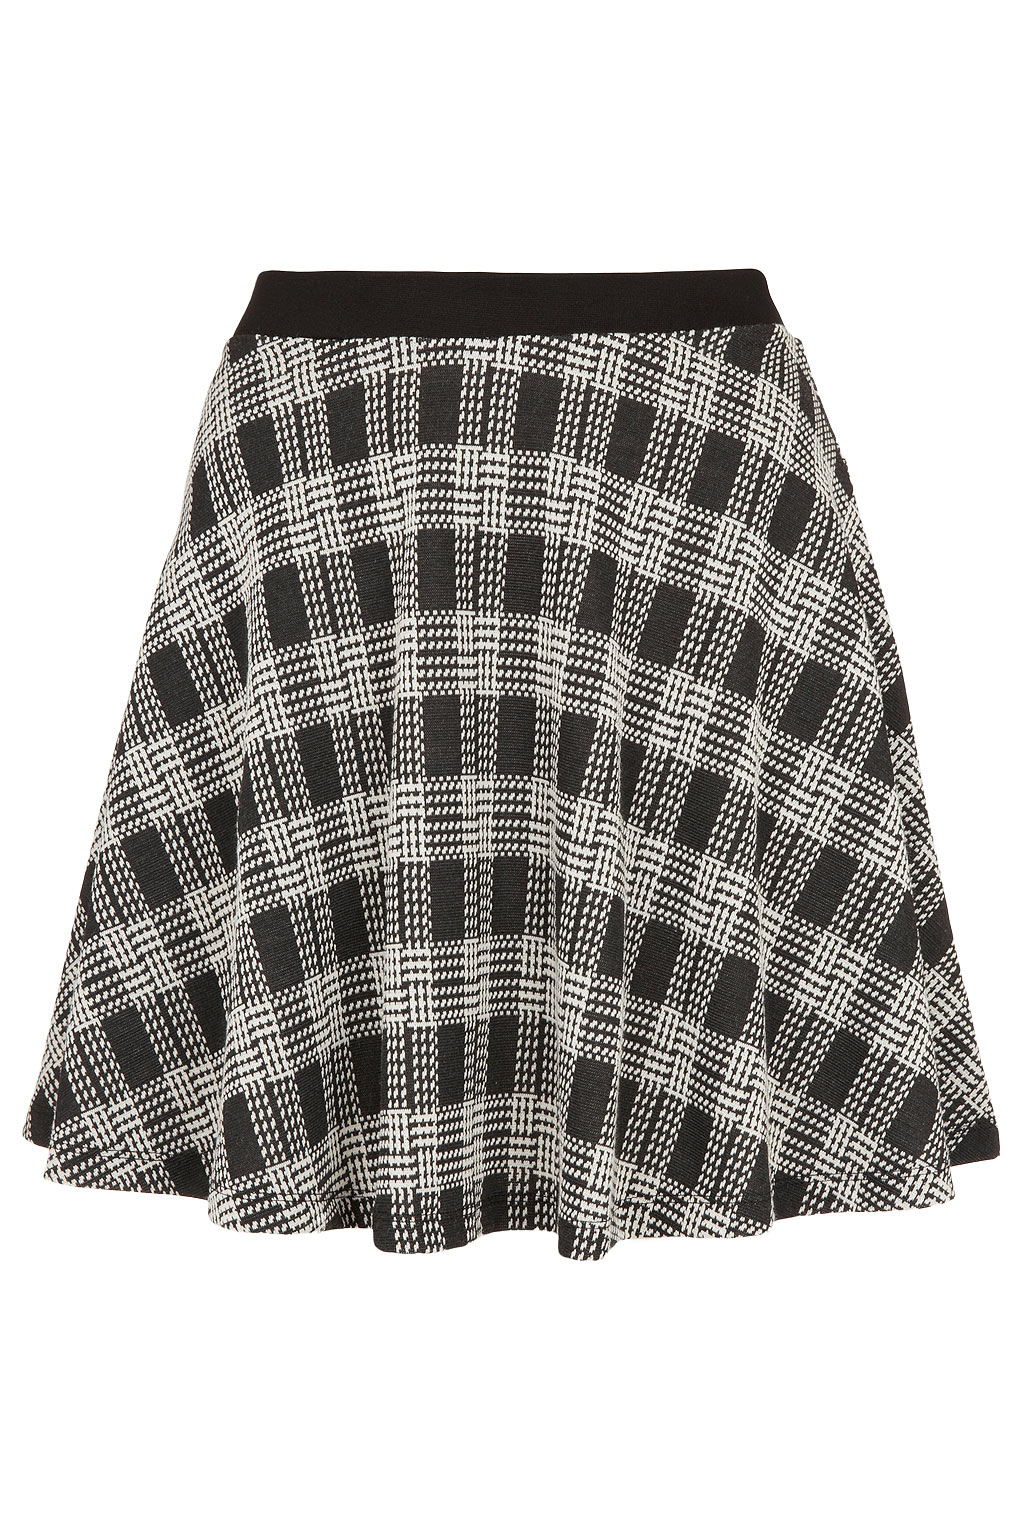 Topshop Black Check Skater Skirt in Black | Lyst